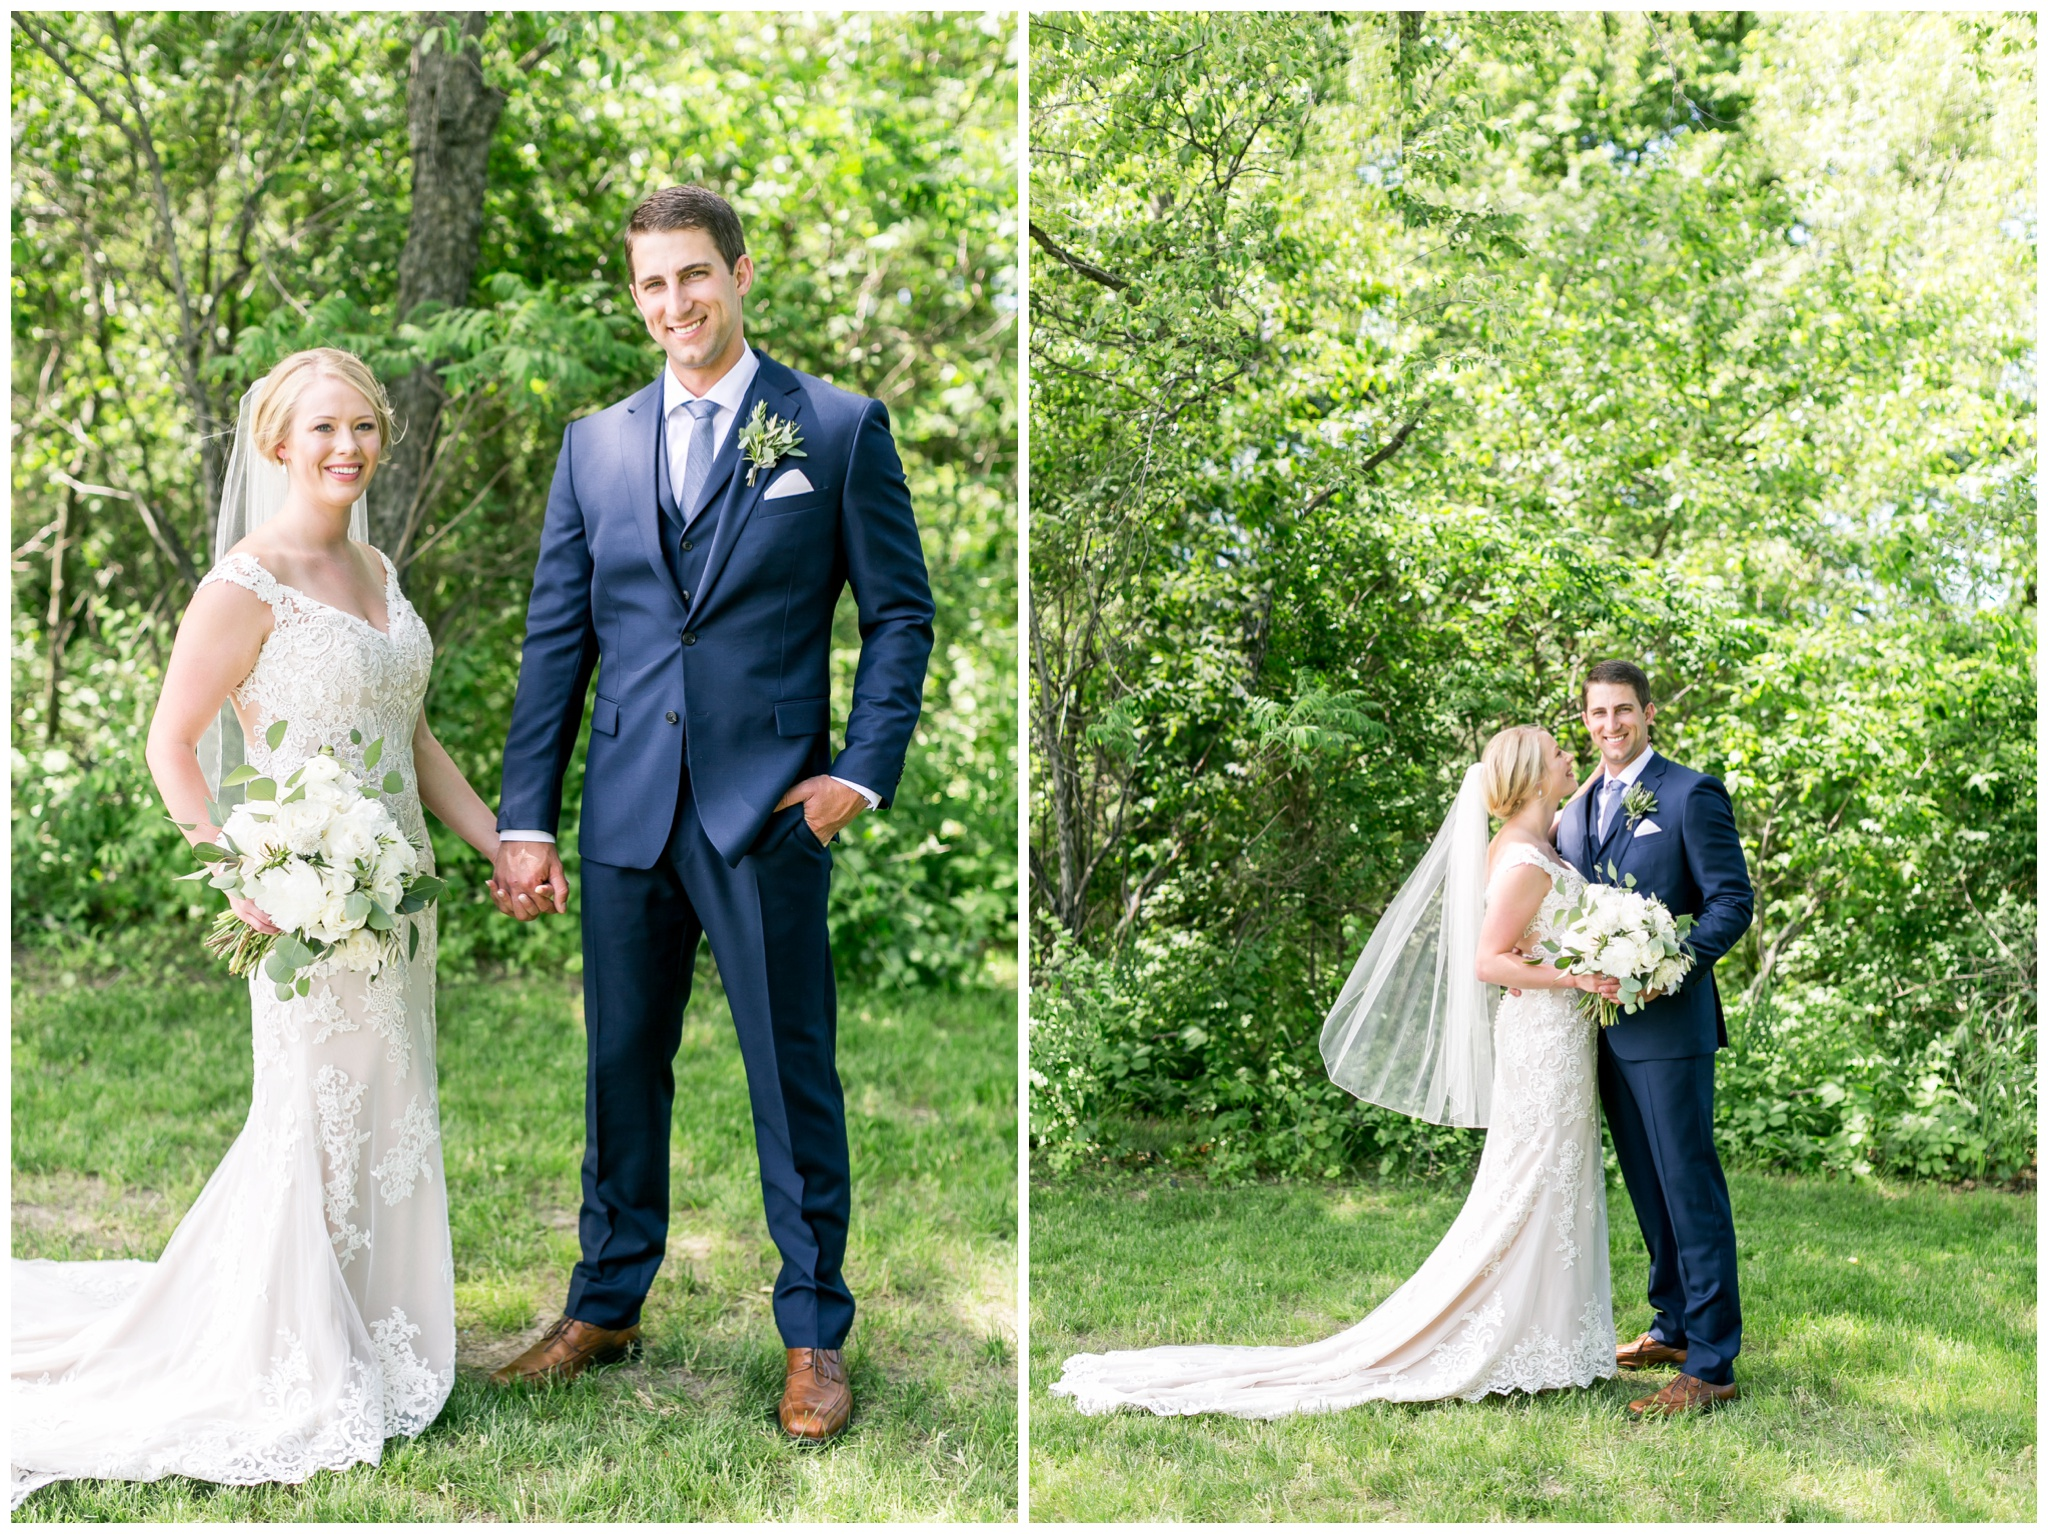 private_estate_wedding_stoughton_wisconsin_wedding_caynay_photo_3842.jpg